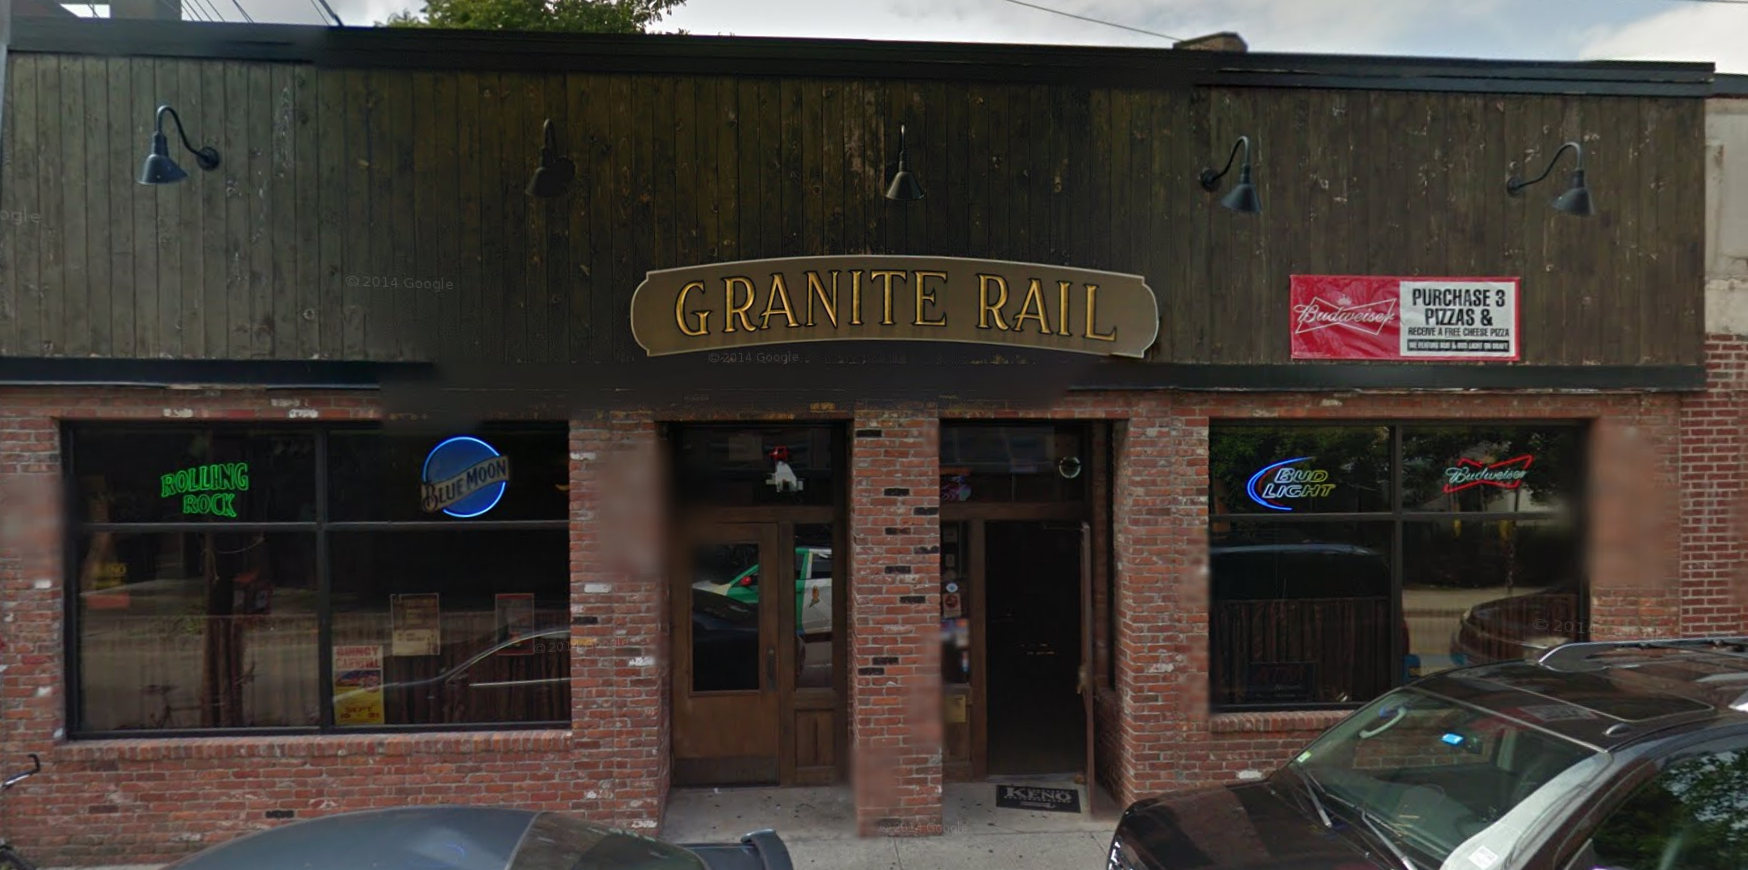 Granite Rail at 16 Cottage Ave. in Quincy